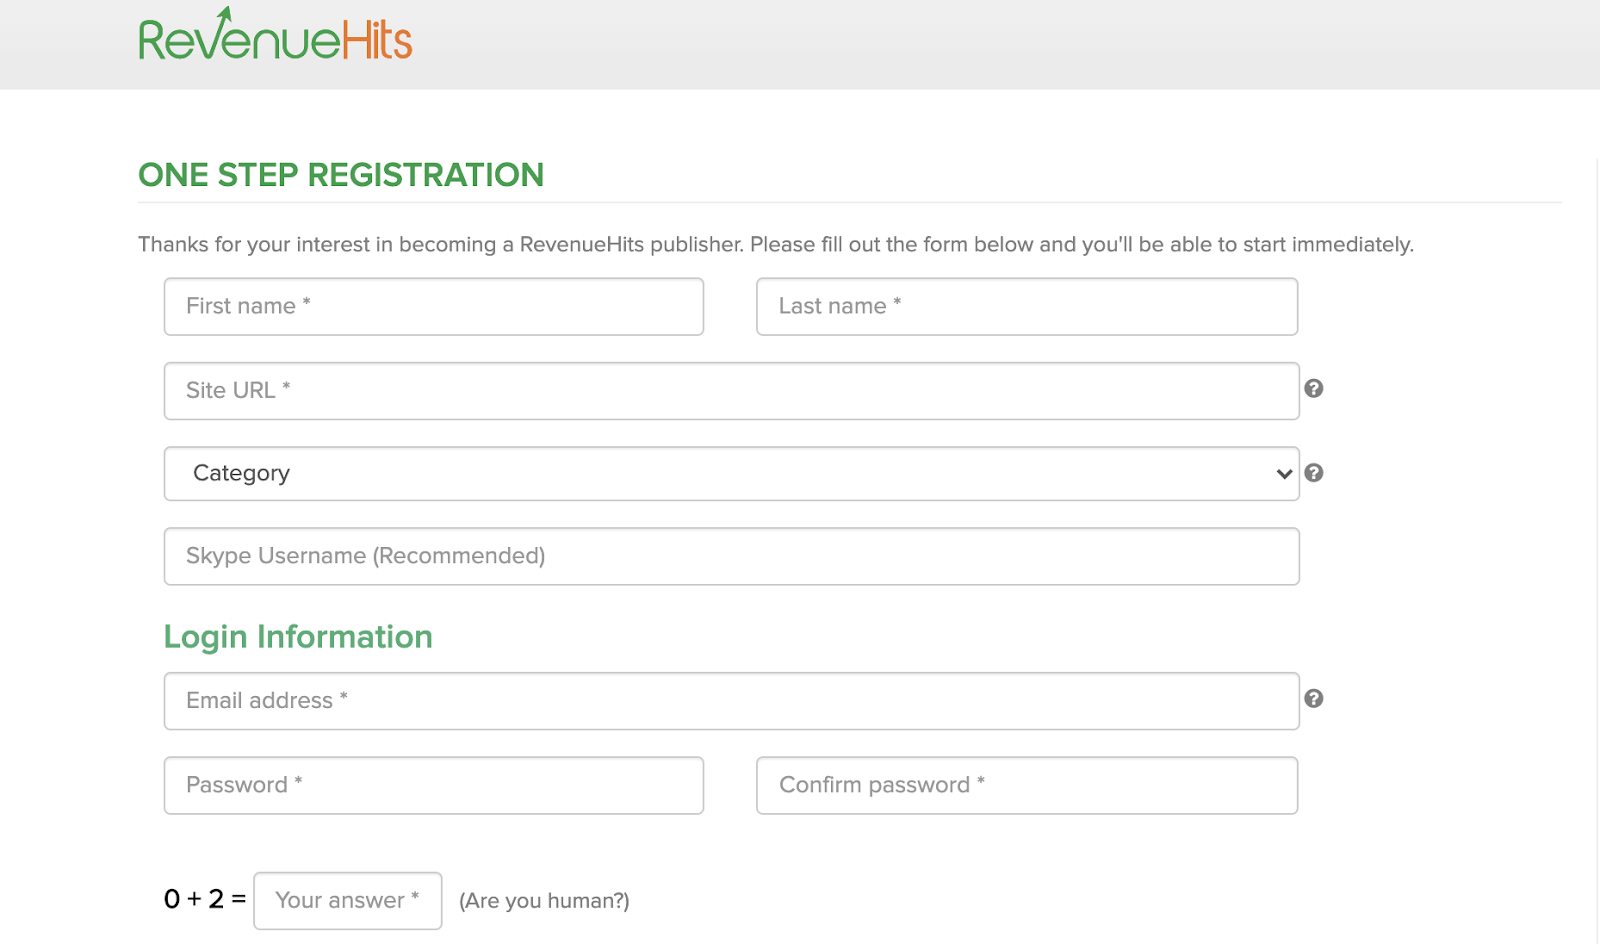 Registration Process for RevenueHits